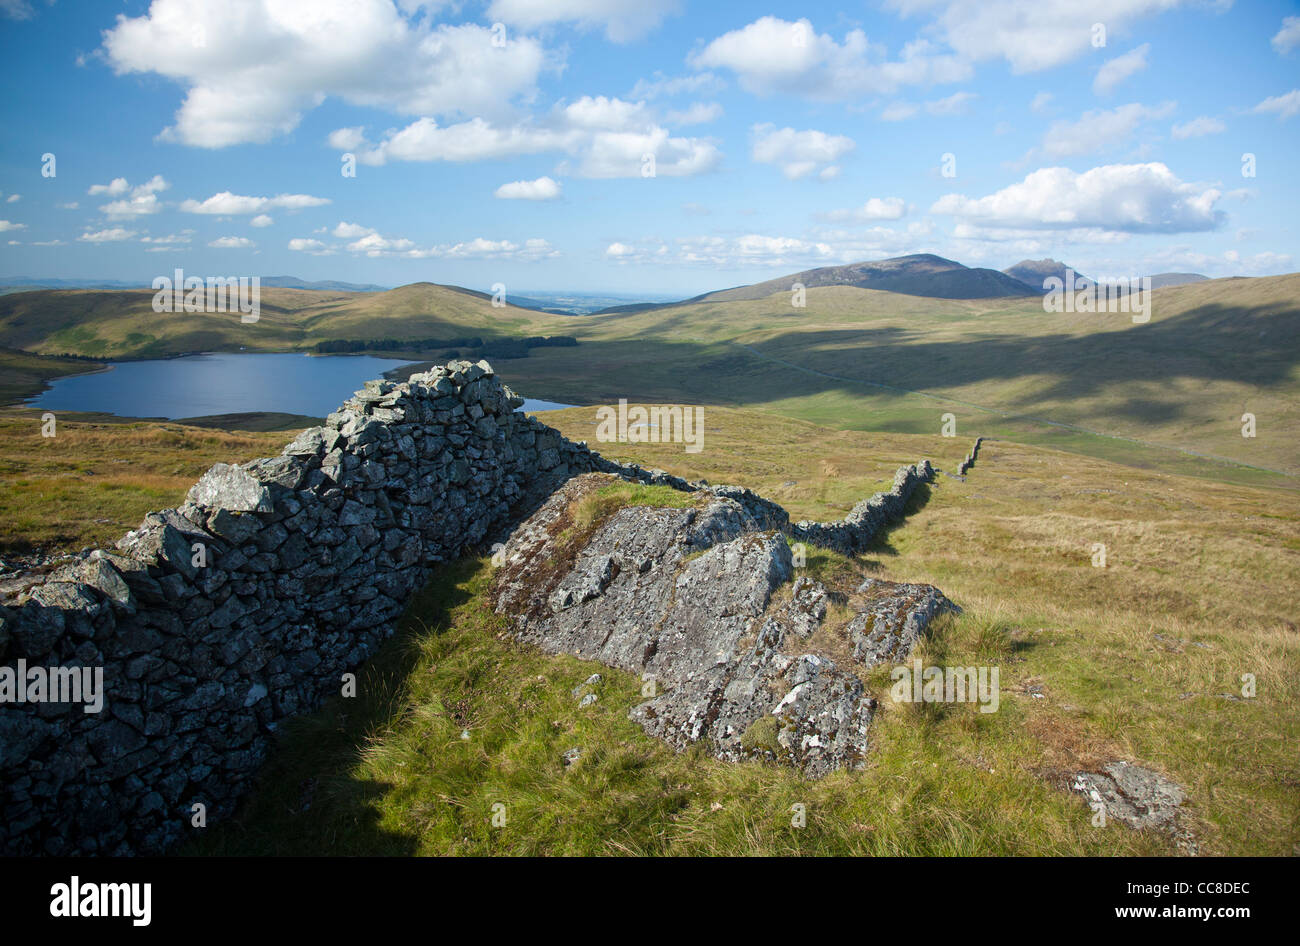 View towards the High Mournes from Pigeon Rock Mountain, Mourne Mountains, County Down, Northern Ireland. - Stock Image